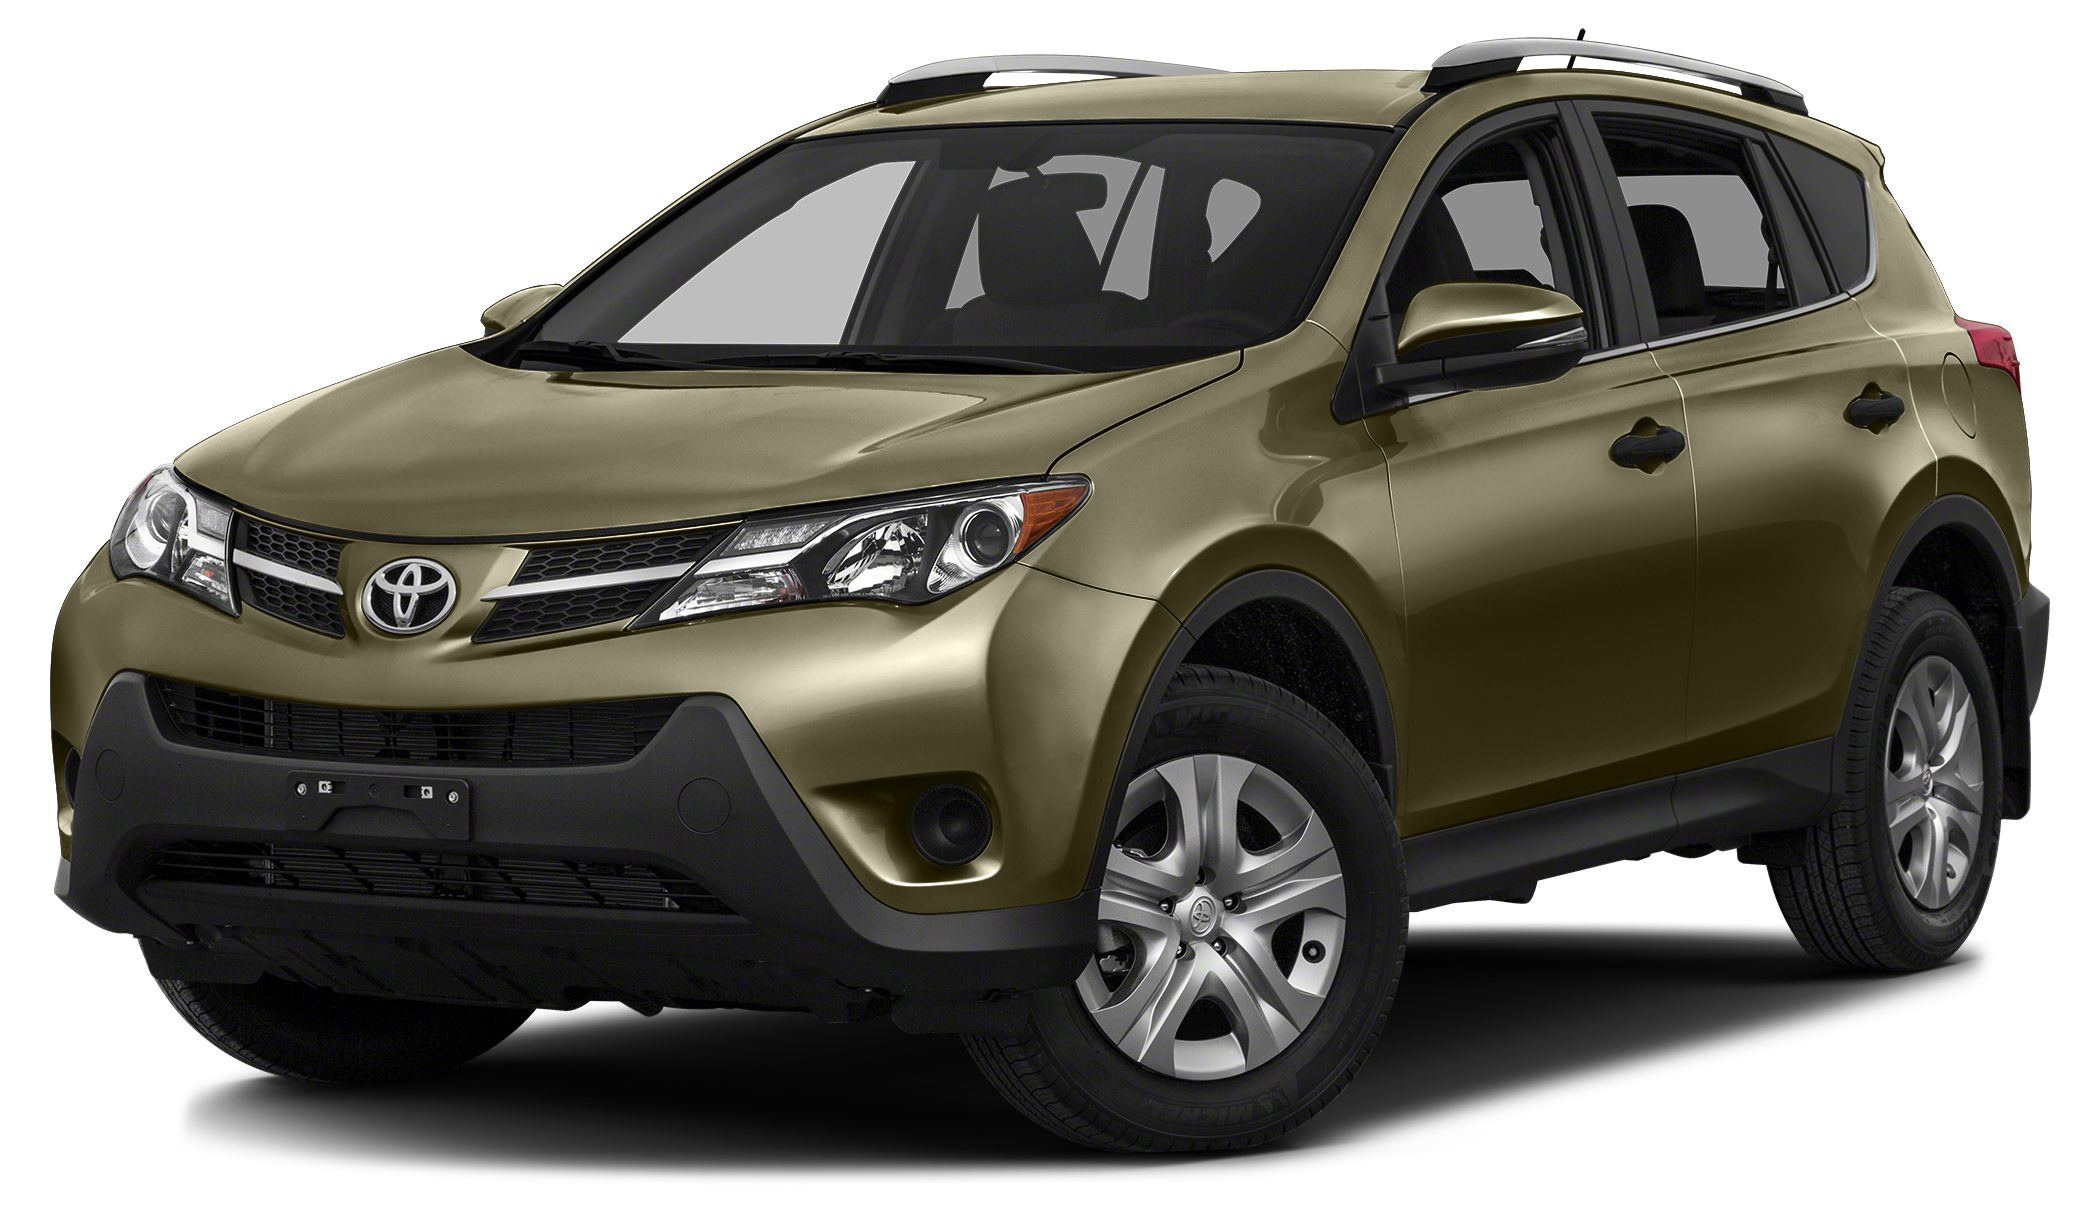 2014 Toyota RAV4 XLE PYRITE MICA exterior and BLACK interior XLE trim CARFAX 1-Owner EPA 29 MPG